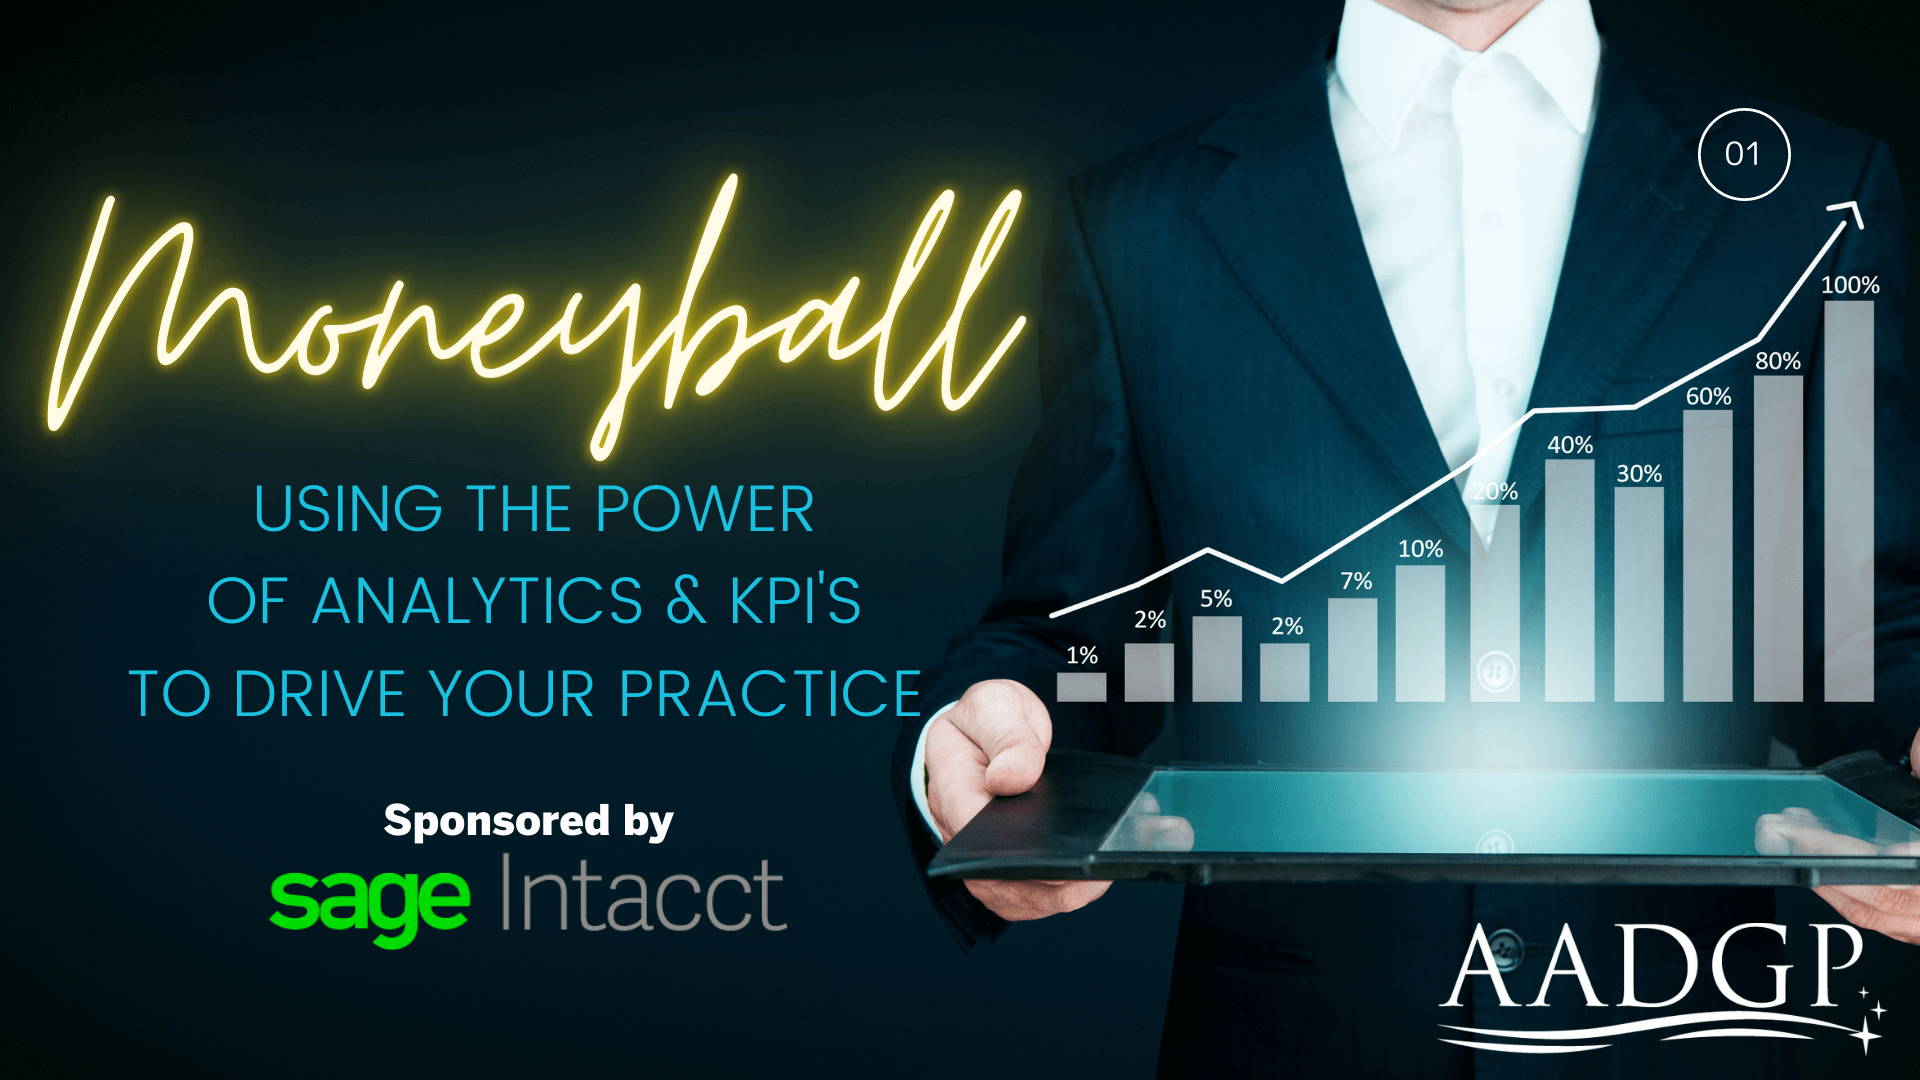 Moneyball Sponsored by Sage Intaact